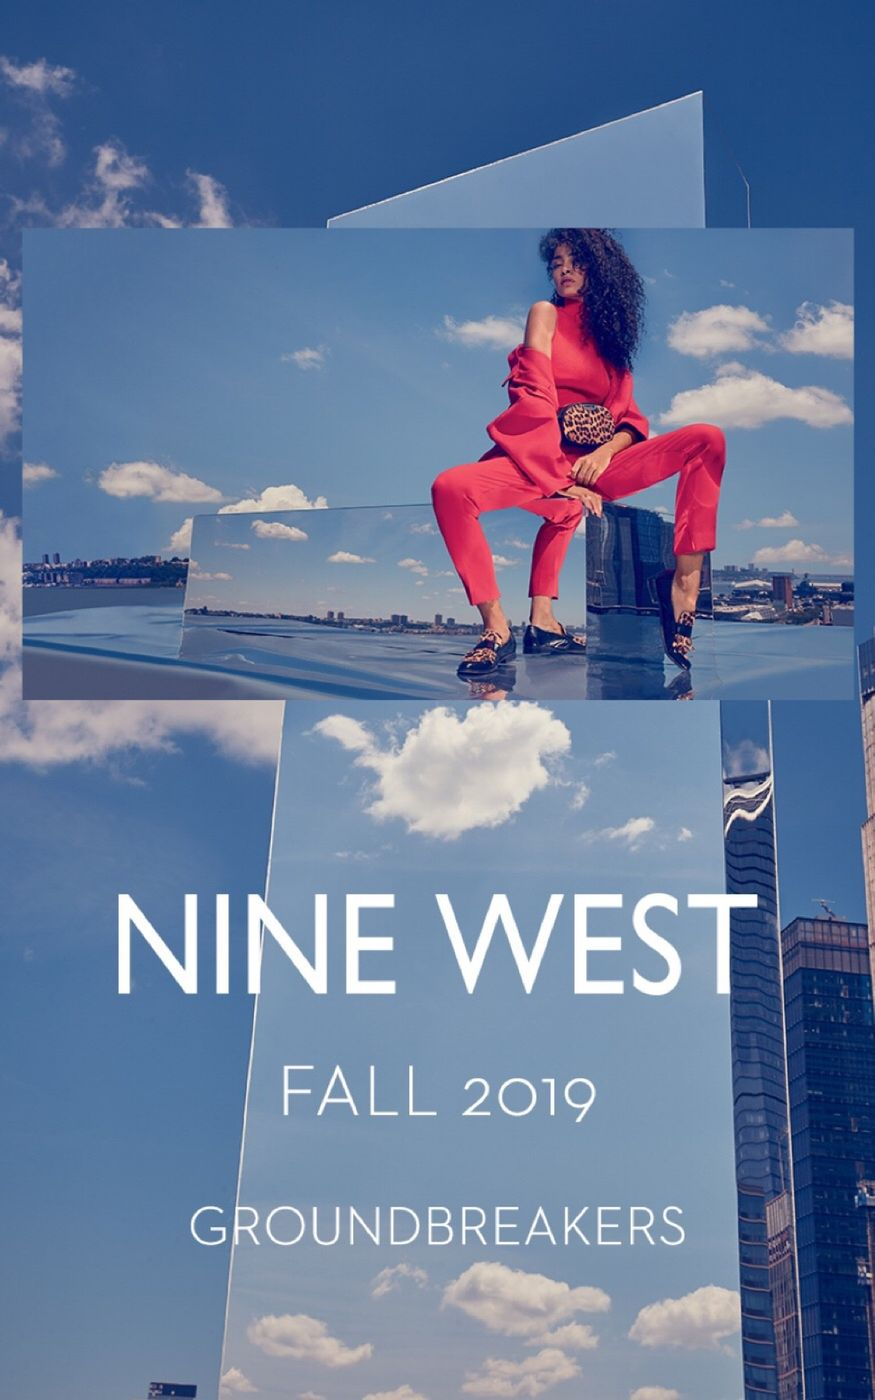 Nine West Fall 2019 Groundbreakers